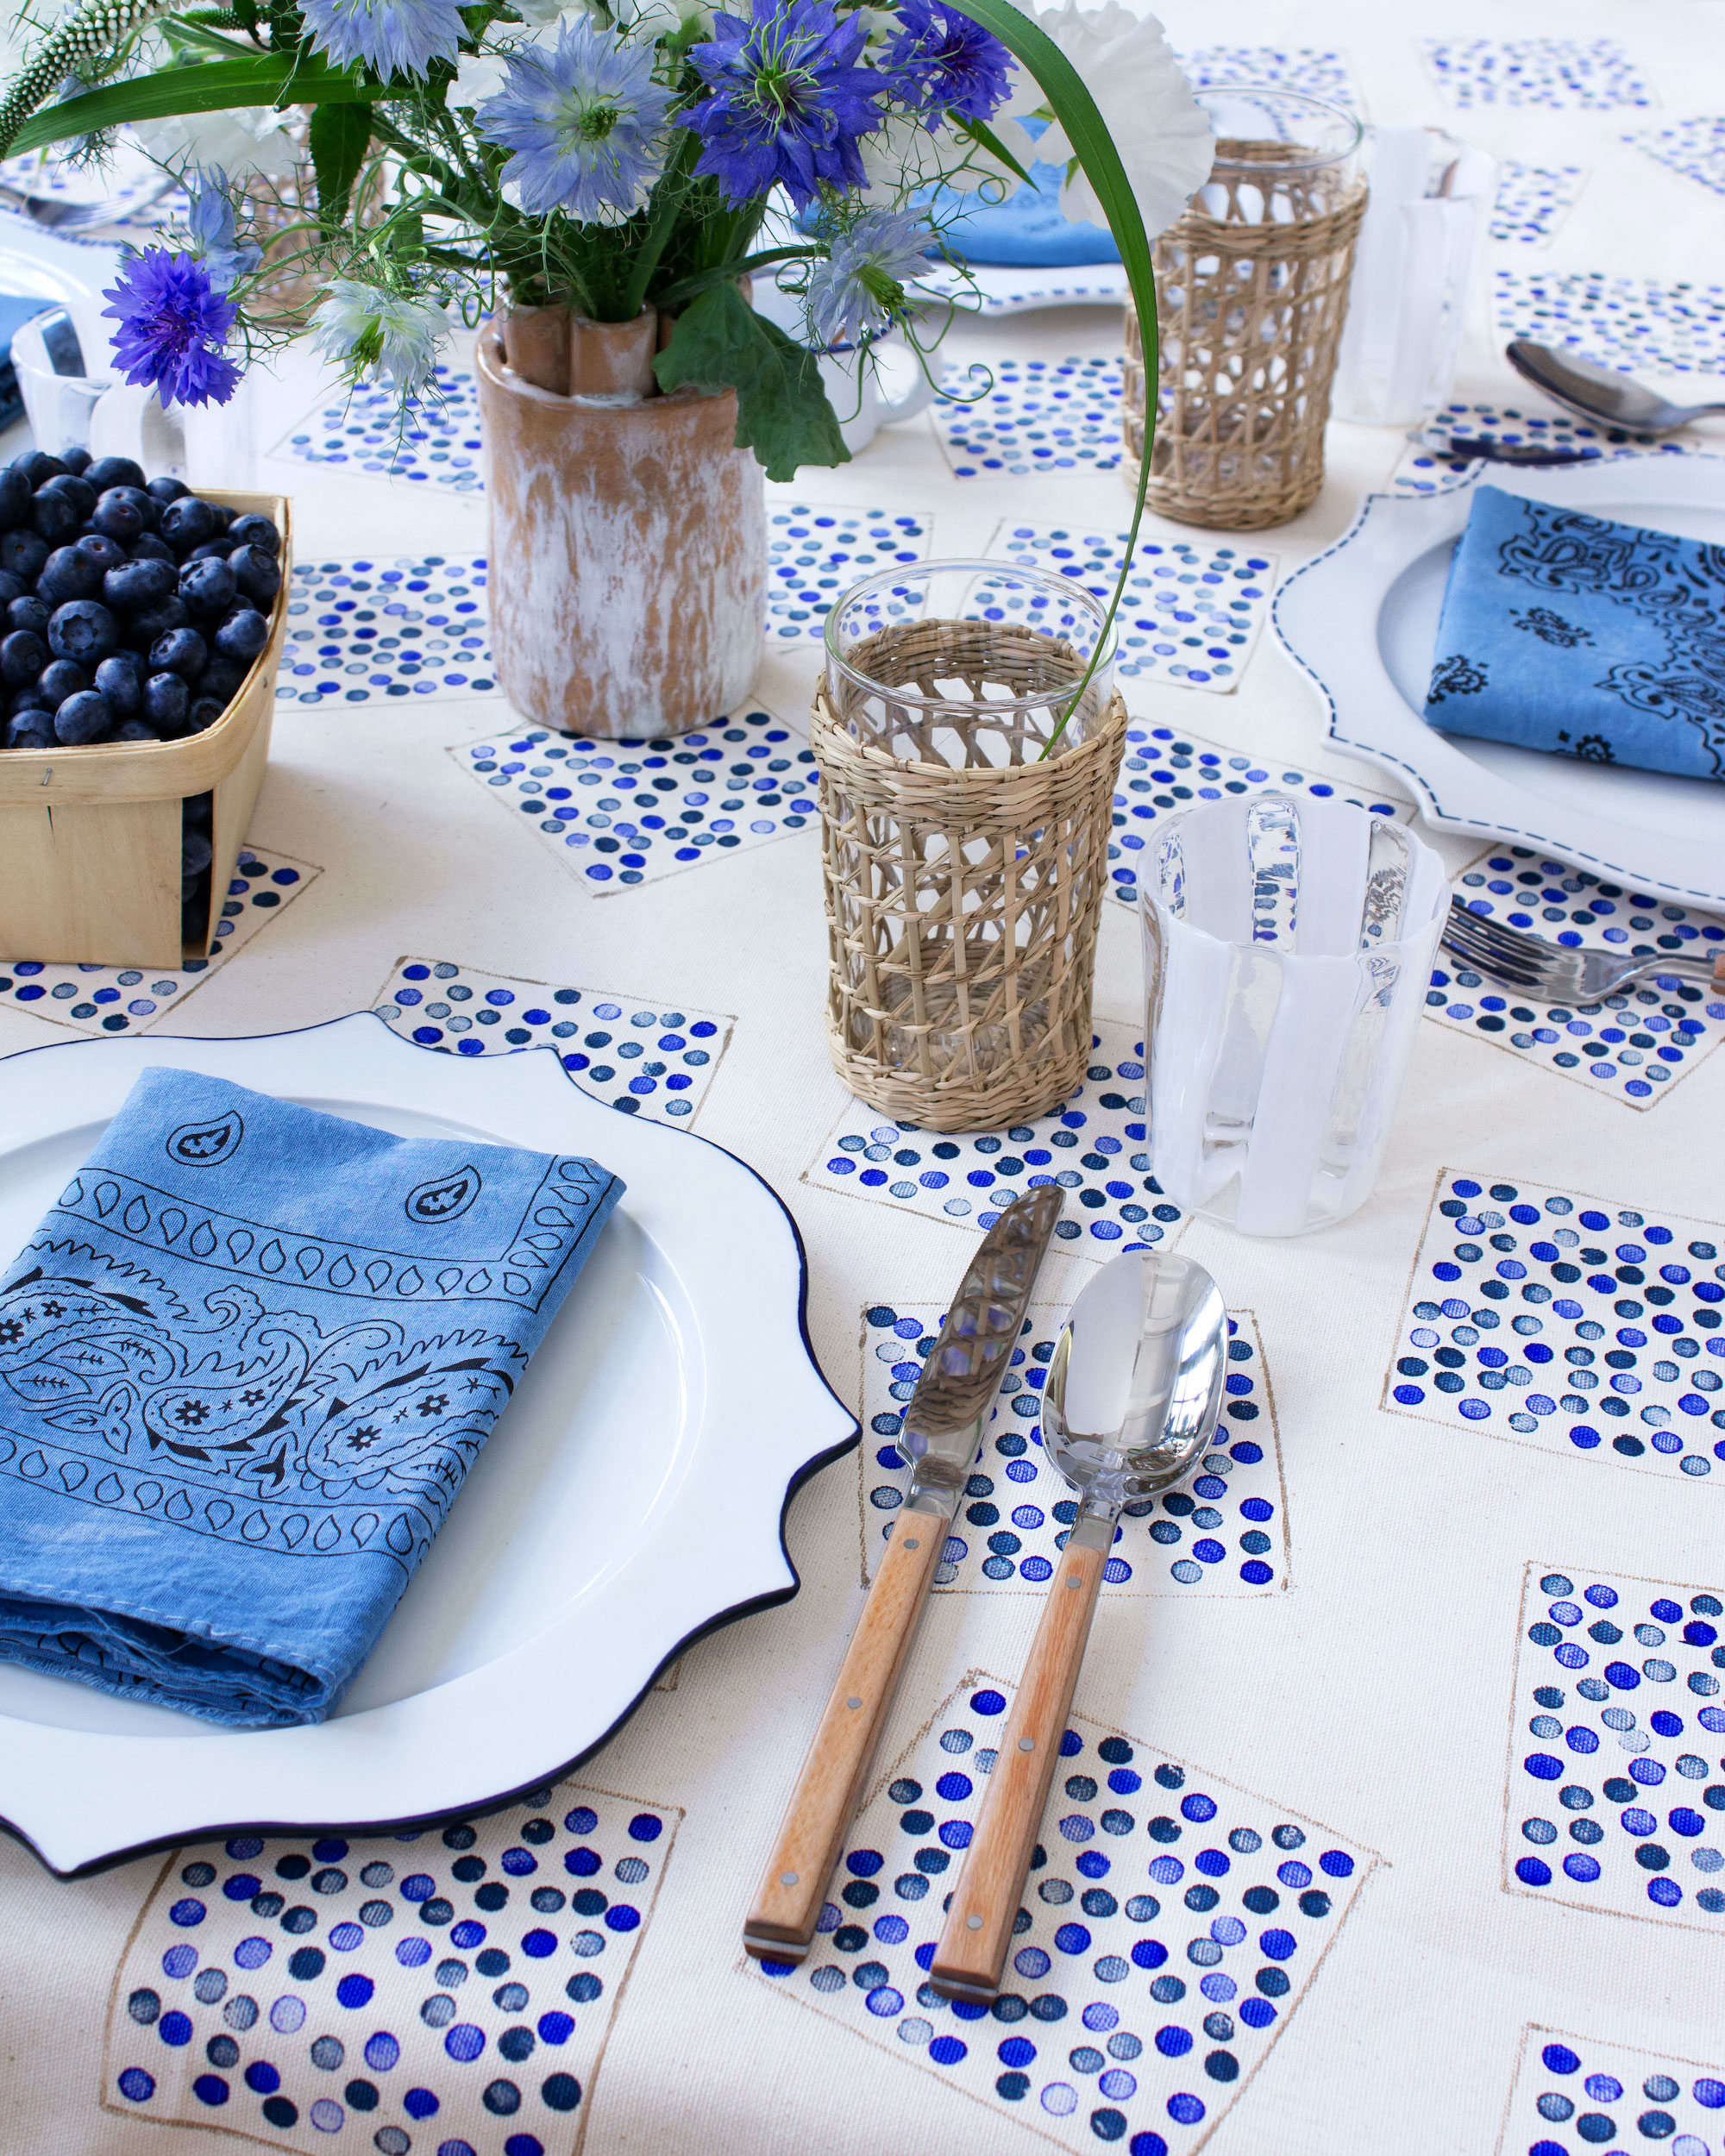 Fourth of July DIY: An Easy-Breezy Blueberry-Inspired Tablecloth by David Stark - Remodelista